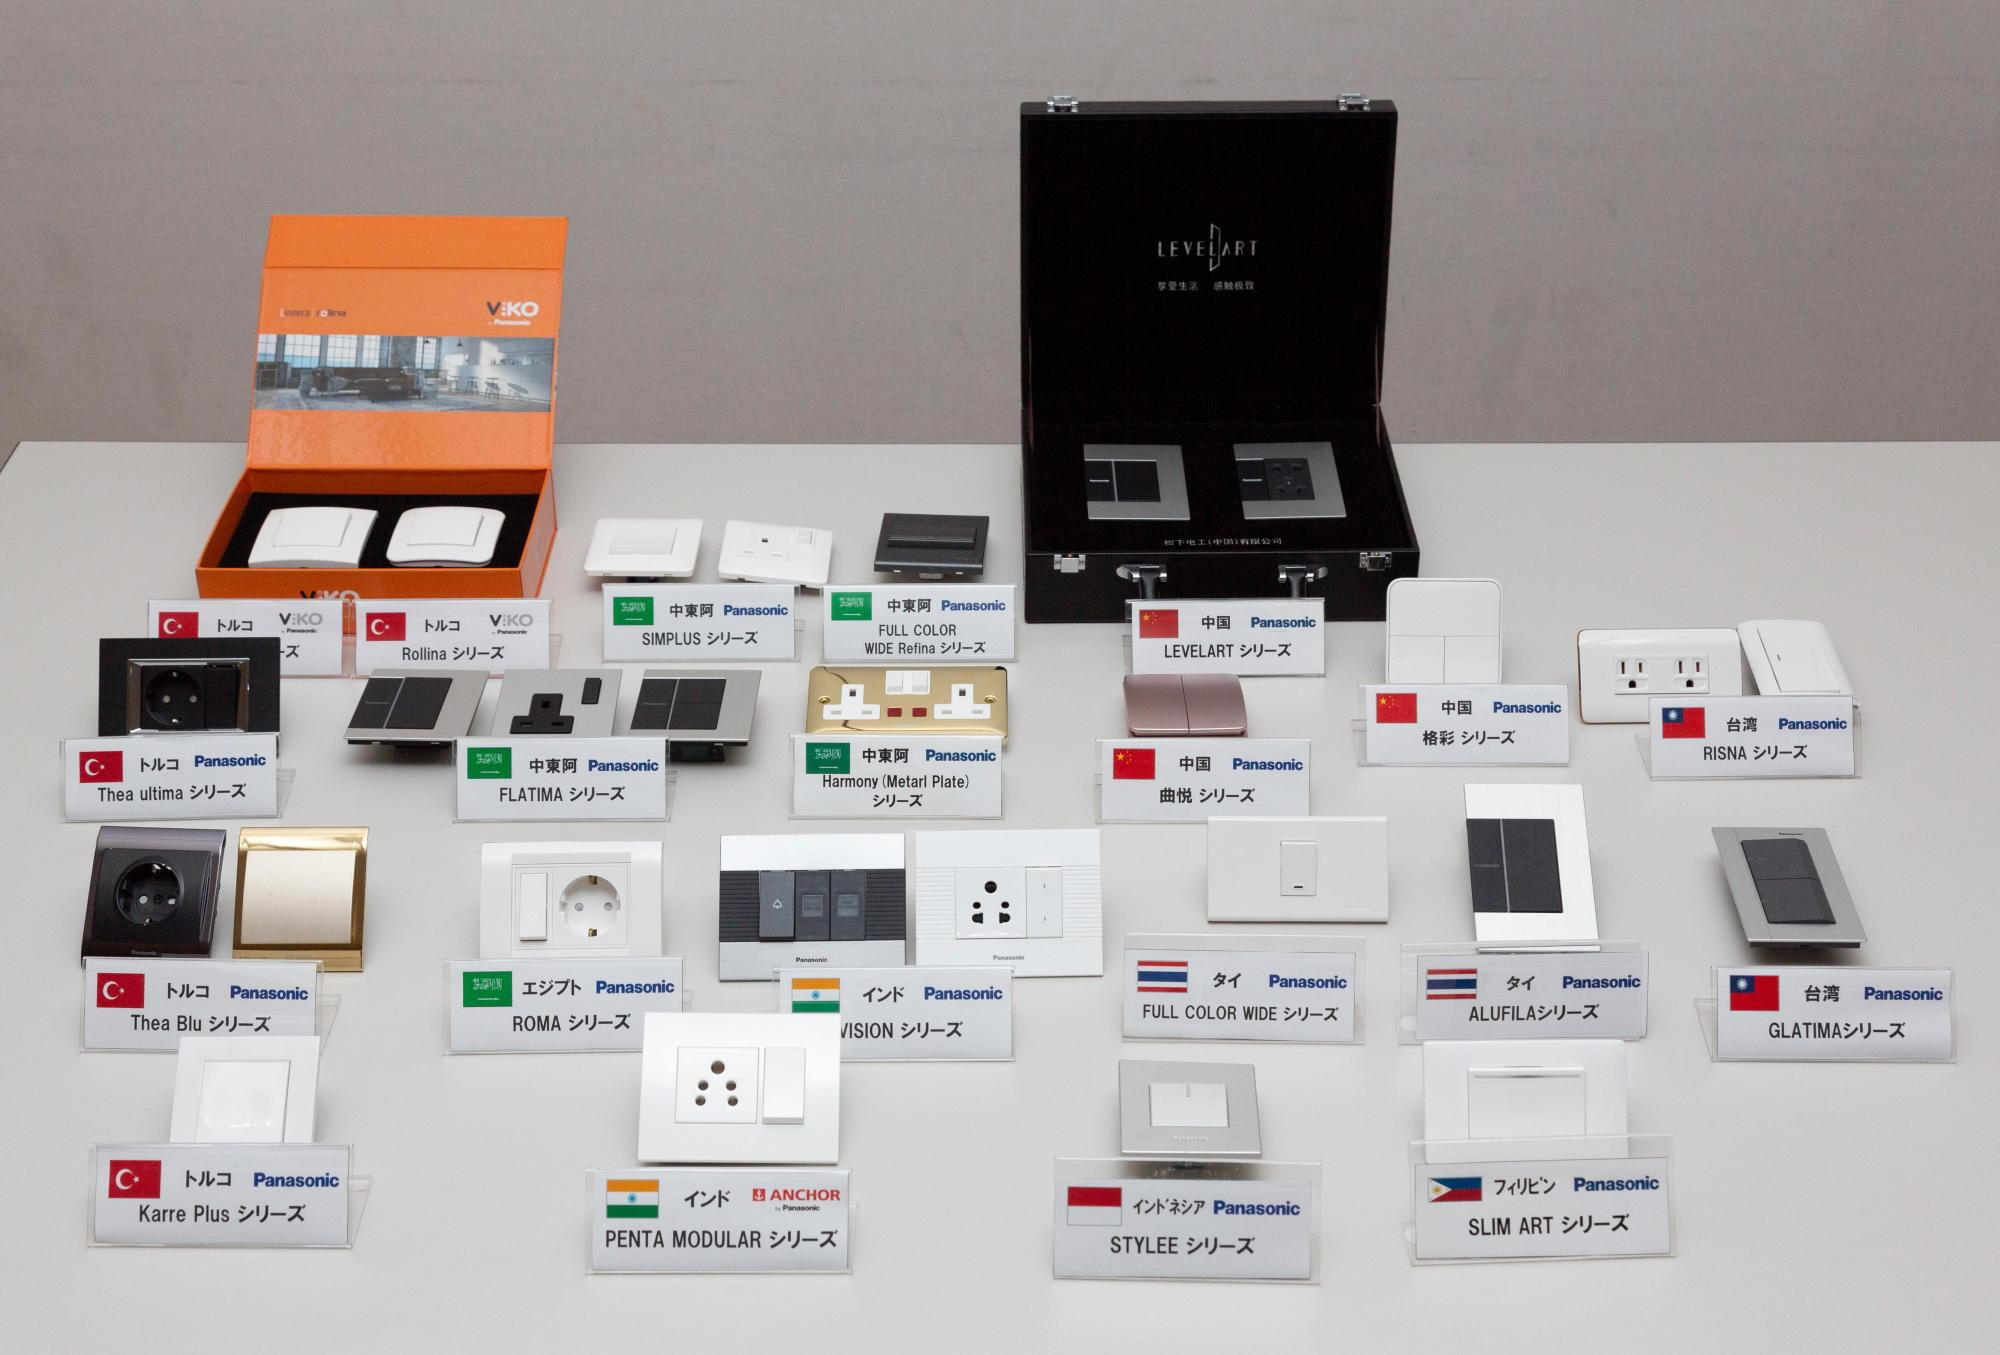 hight resolution of 100 years delivering light and convenience panasonic u0027s iconicfigure panasonic u0027s wiring devices of various shapes and designs cater to the